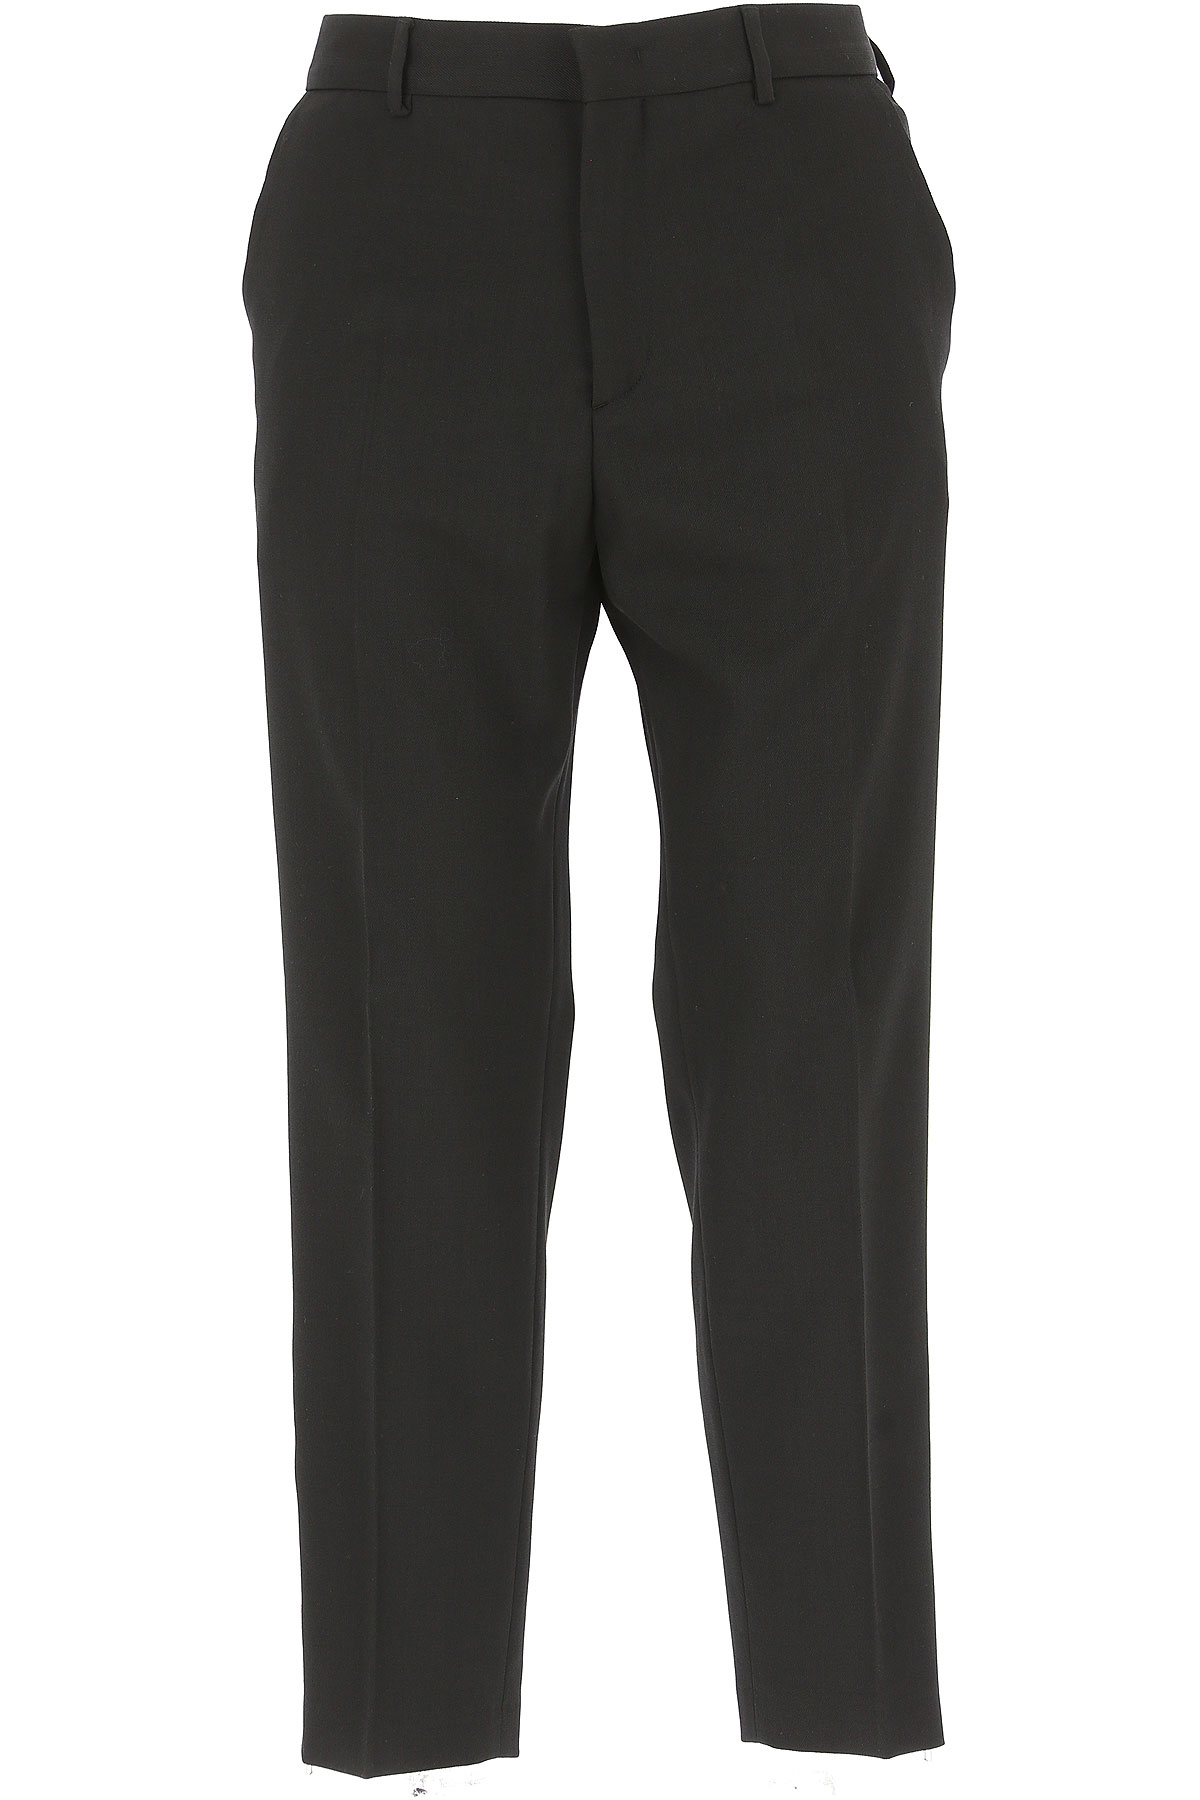 Alexander McQueen McQ Pants for Men On Sale in Outlet, Black, polyester, 2019, 30 32 36